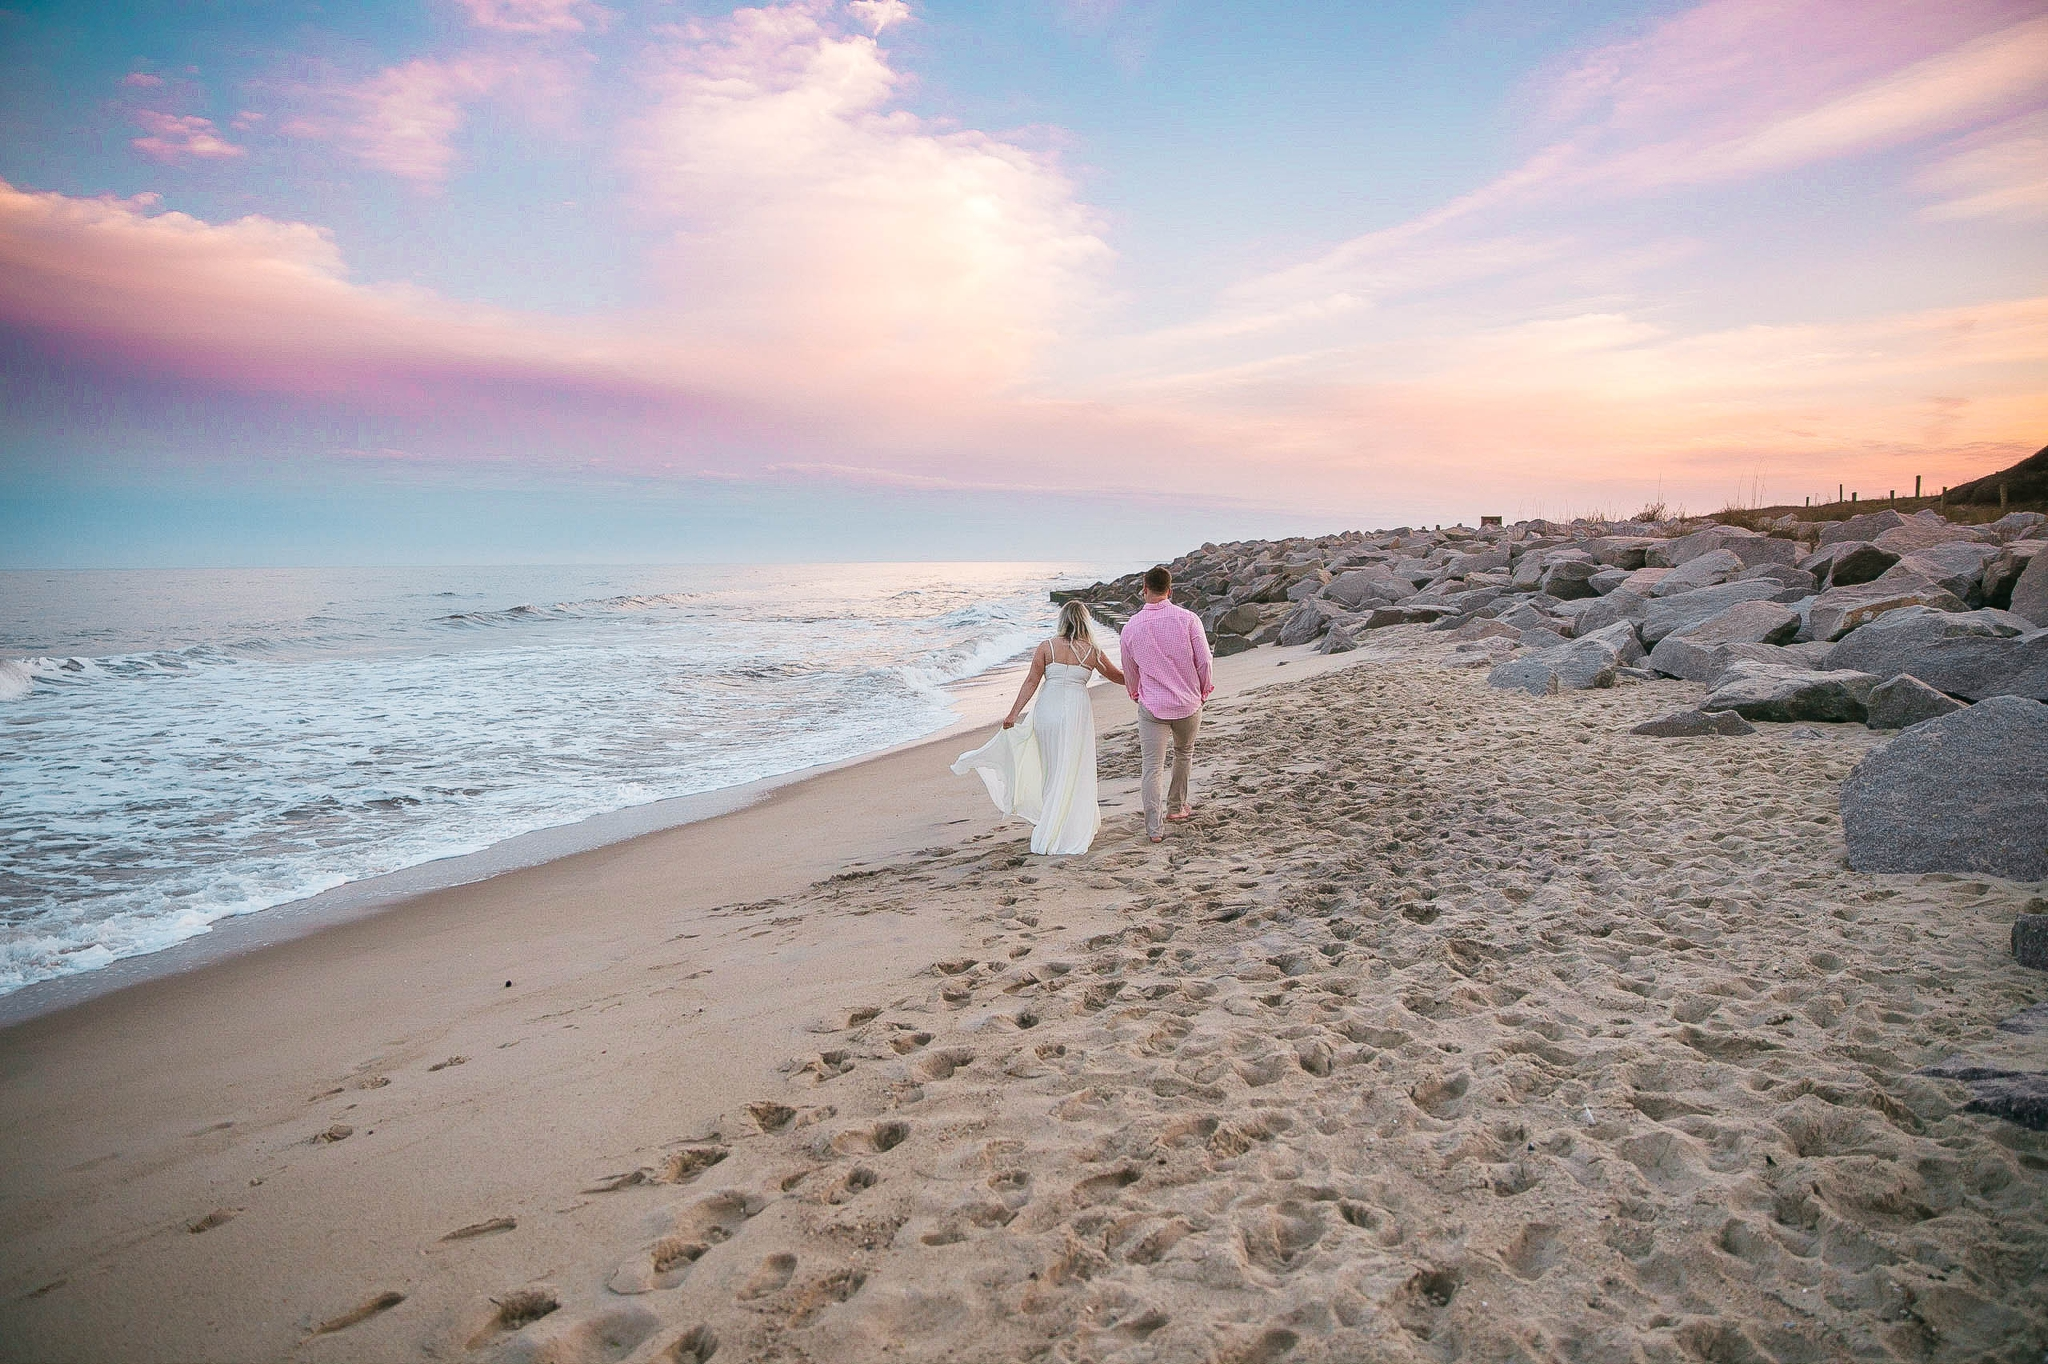 Romantic Engagement Photography Session at the beach during sunset with a cotton candy sky - couple is walking in the sand - girl is wearing a white flowy maxi dress from lulus - Honolulu Oahu Hawaii Wedding Photographer - Johanna Dye